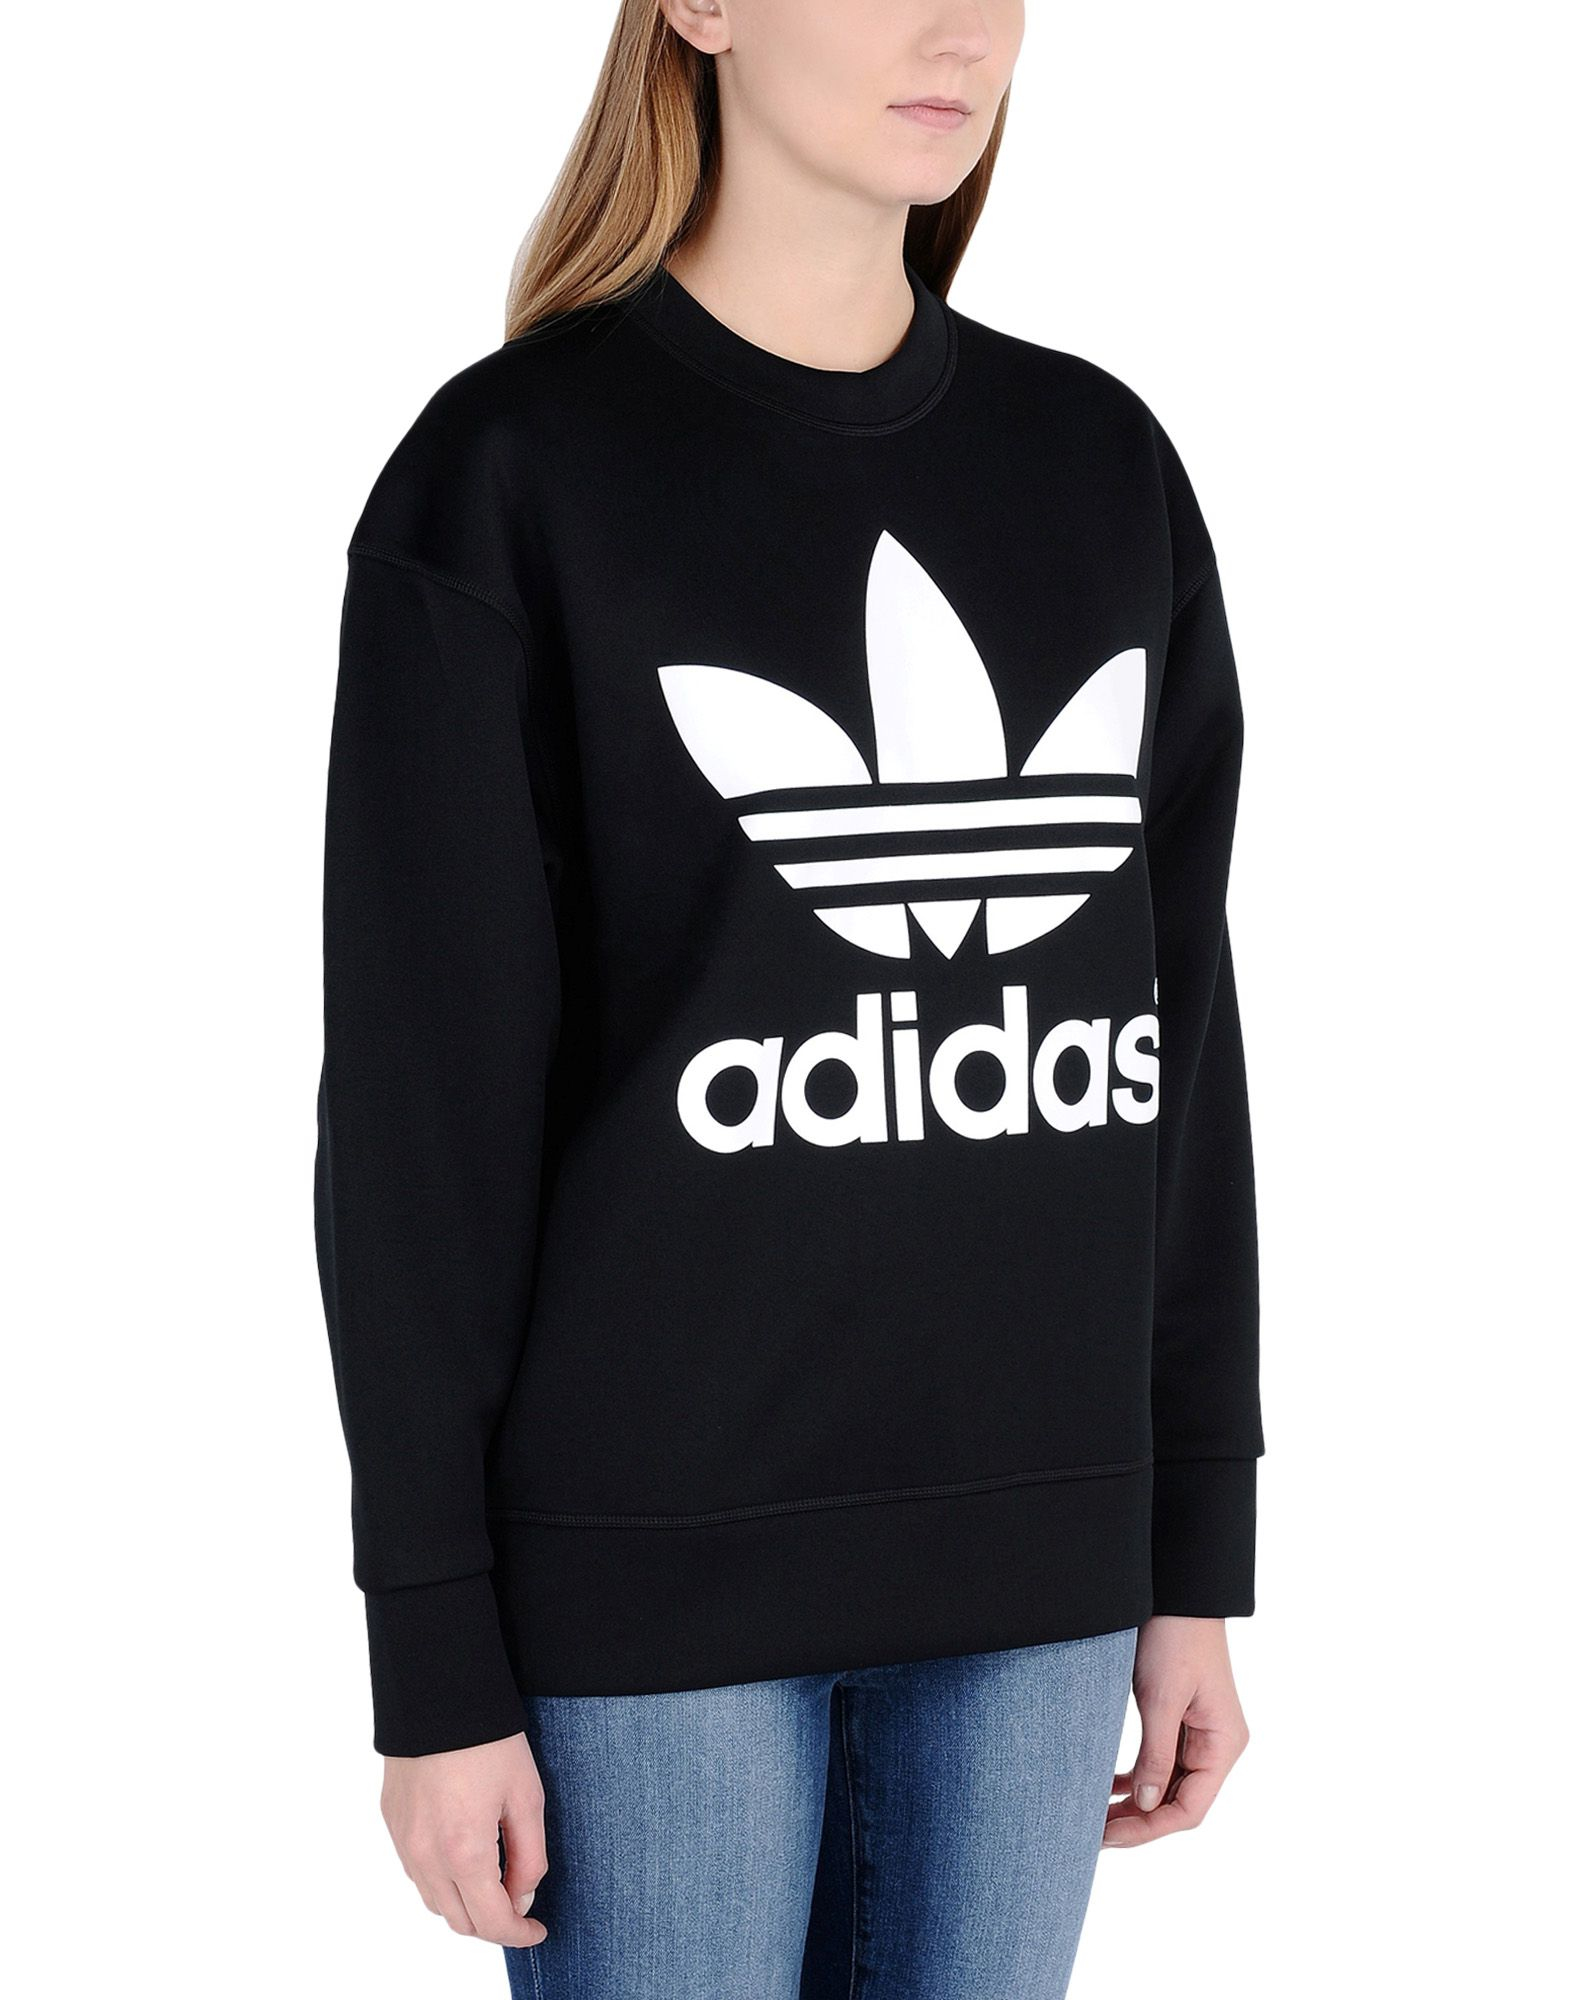 adidas originals sweatshirt in black lyst. Black Bedroom Furniture Sets. Home Design Ideas